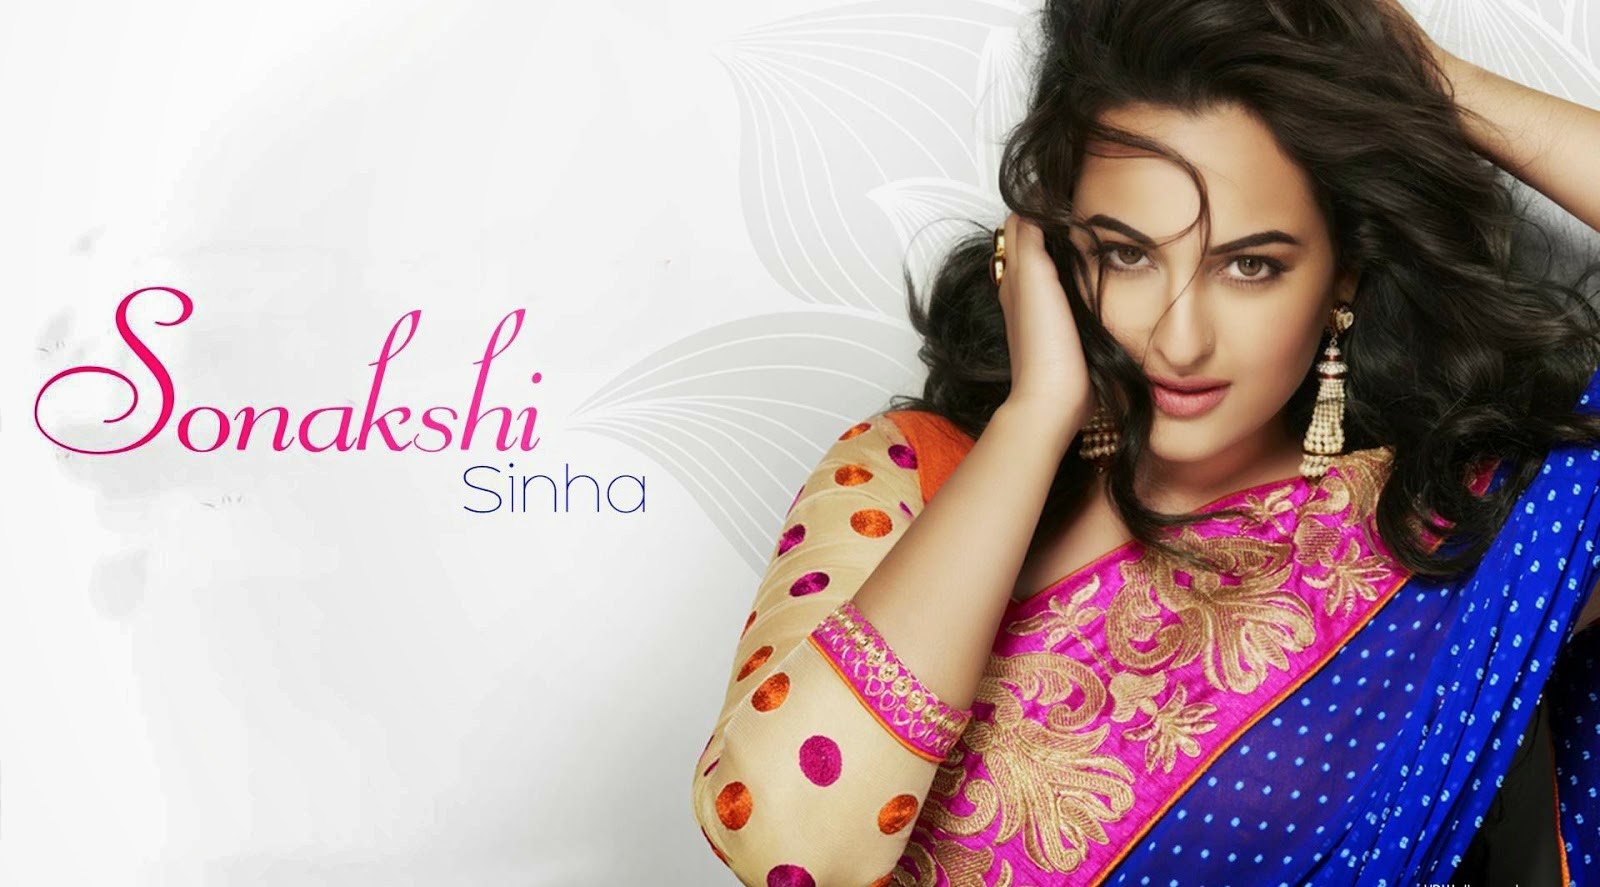 Sonakshi Sinha Hd Wallpapers: Celebrity Gossips